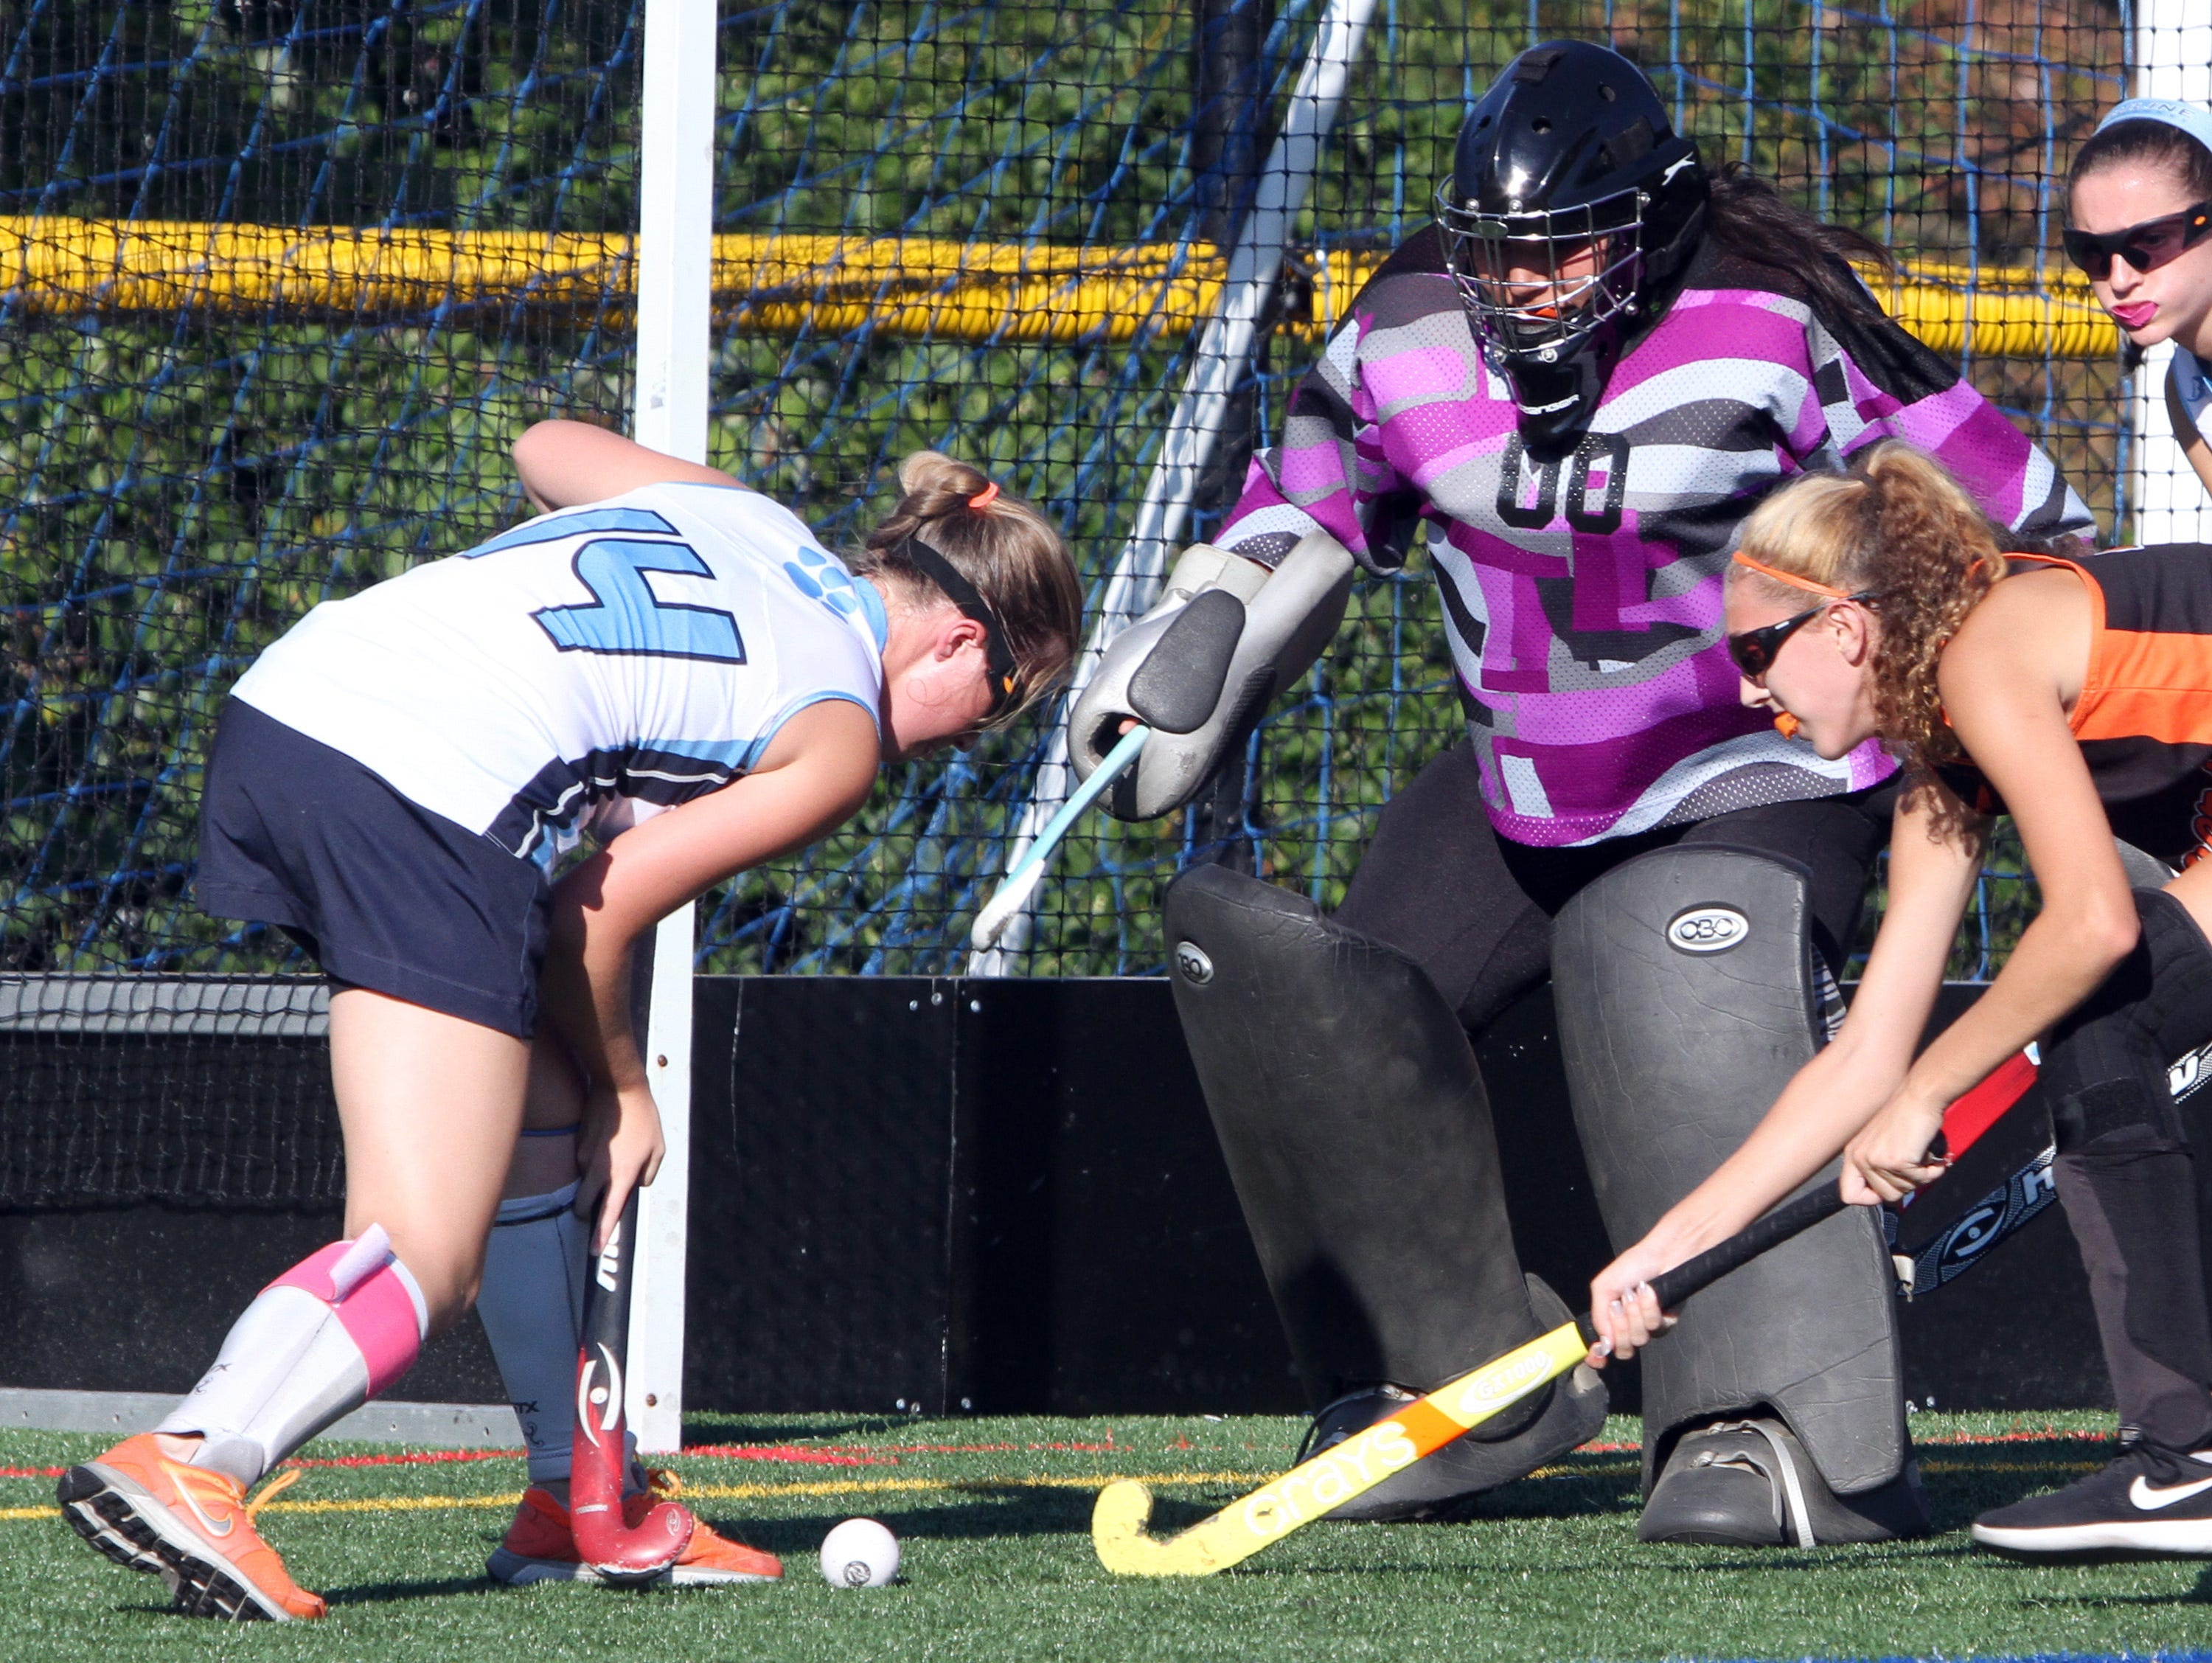 Ursuline's Katie Gies tries to set up a shot in front of White Plains goalie Jen Ortega-Salazar during a varsity field hockey game at the Ursuline School in New Rochelle Sept. 23, 2016.